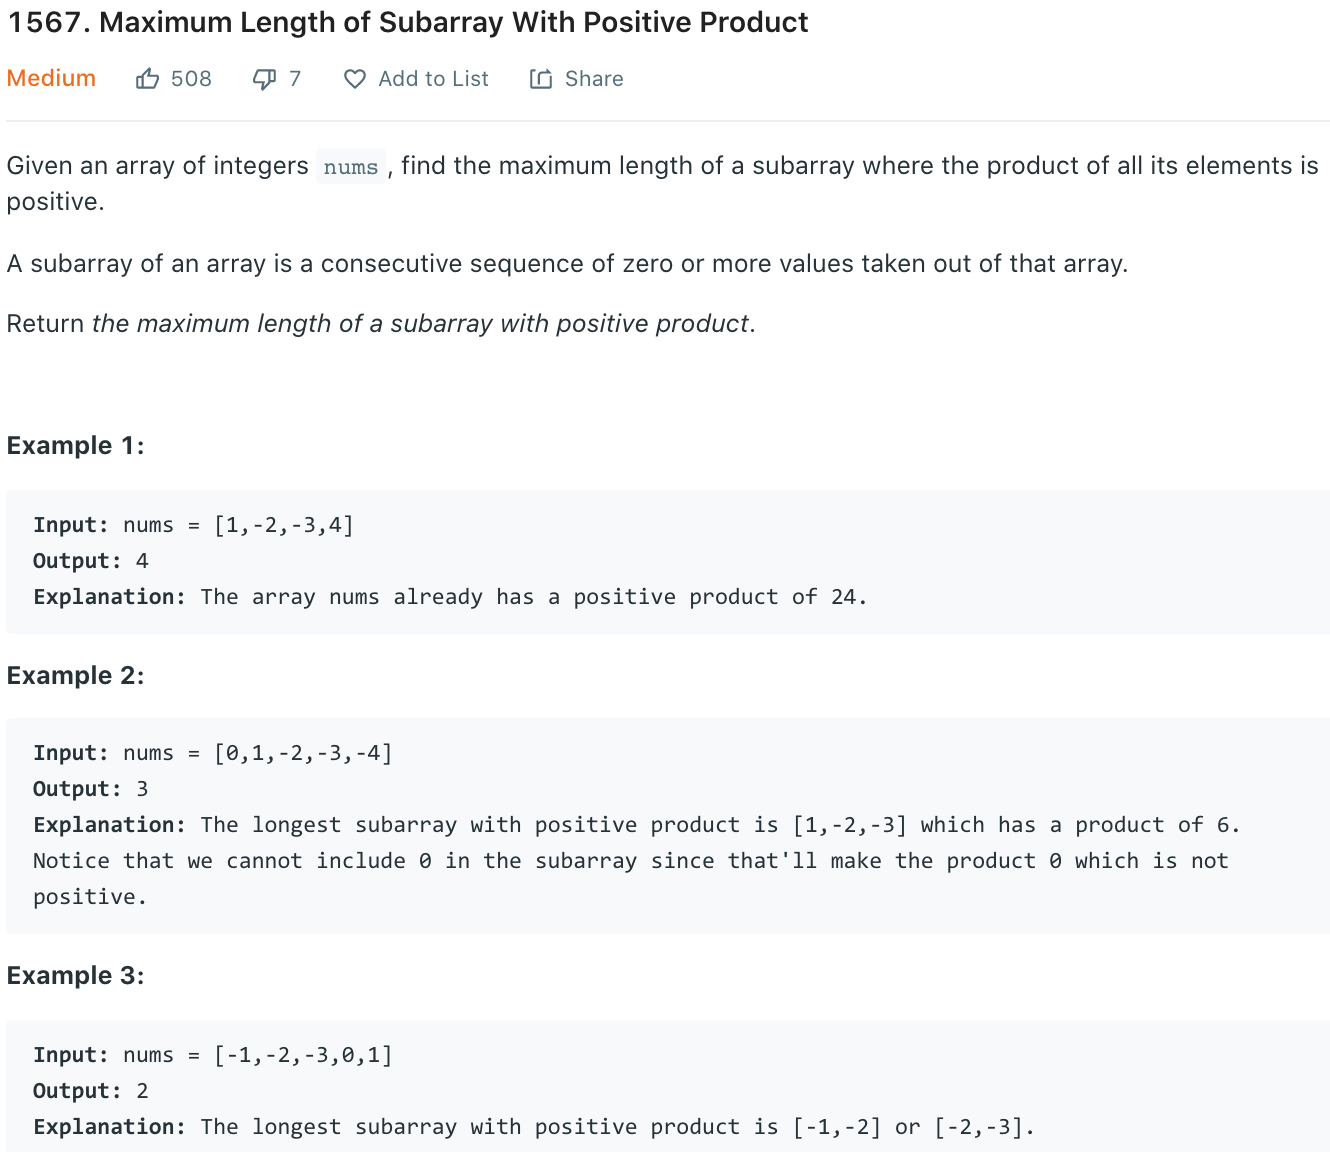 Maximum Length of Subarray With Positive Product